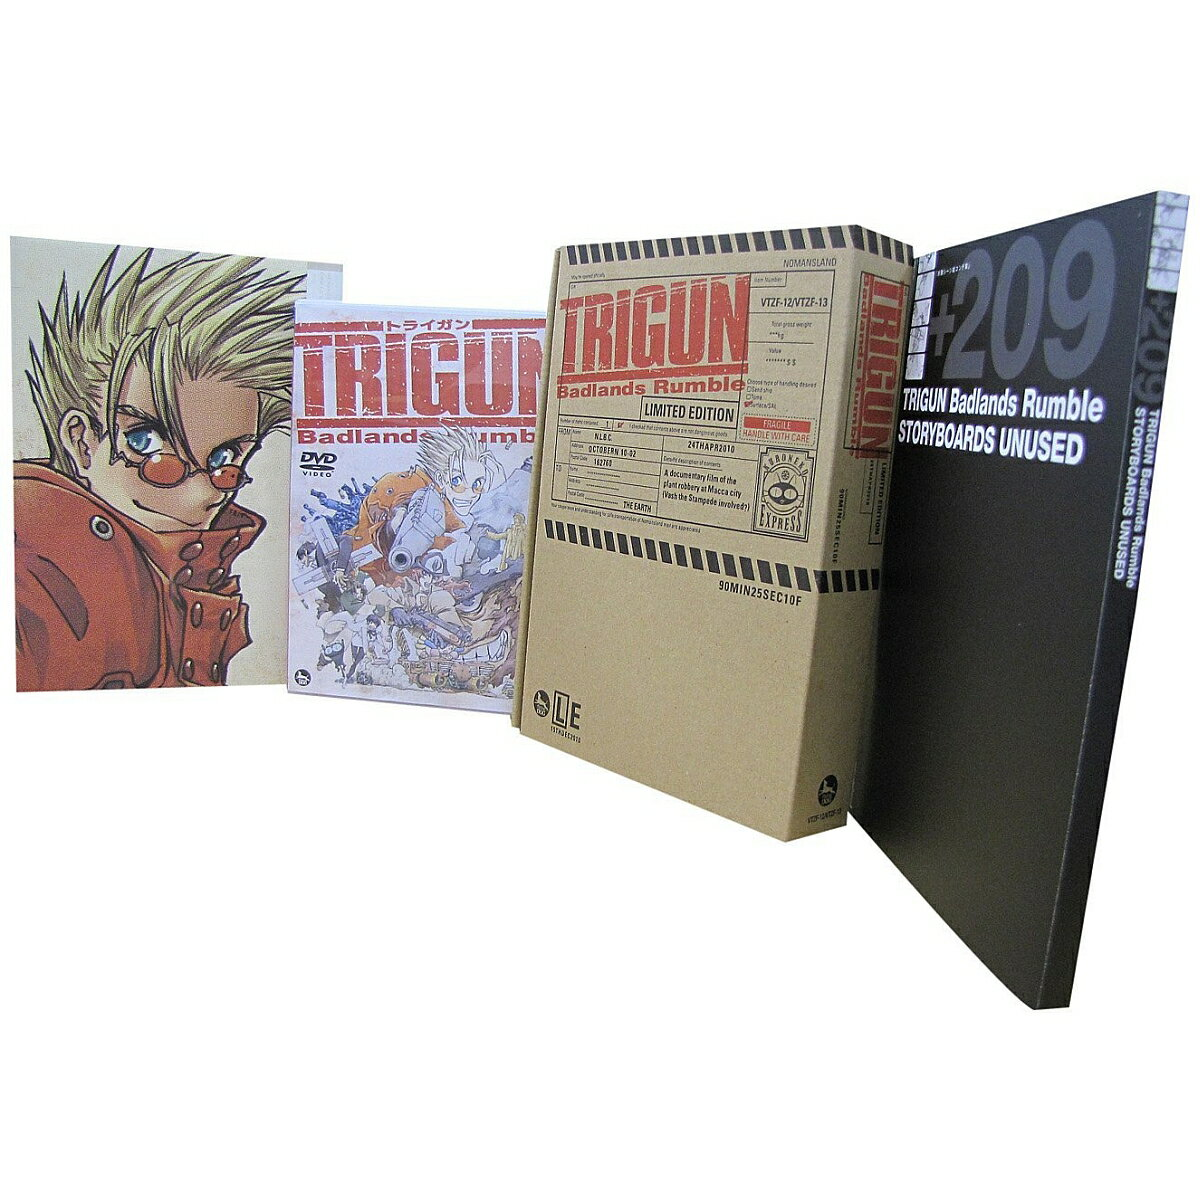 劇場版トライガン TRIGUN Badlands Rumble [LIMITED EDITION]画像